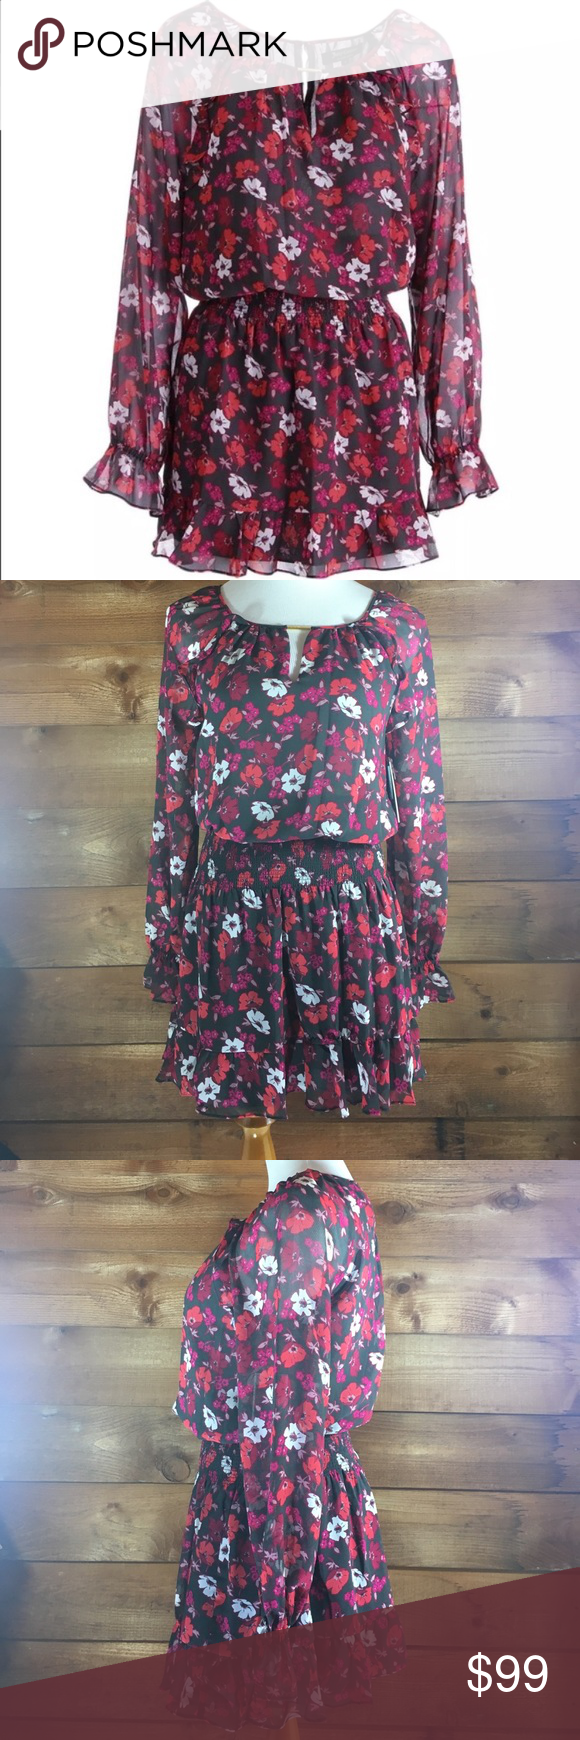 Juicy Couture Floral chiffon dress poppies posies Juicy Couture Top hat  poppies-n-posies